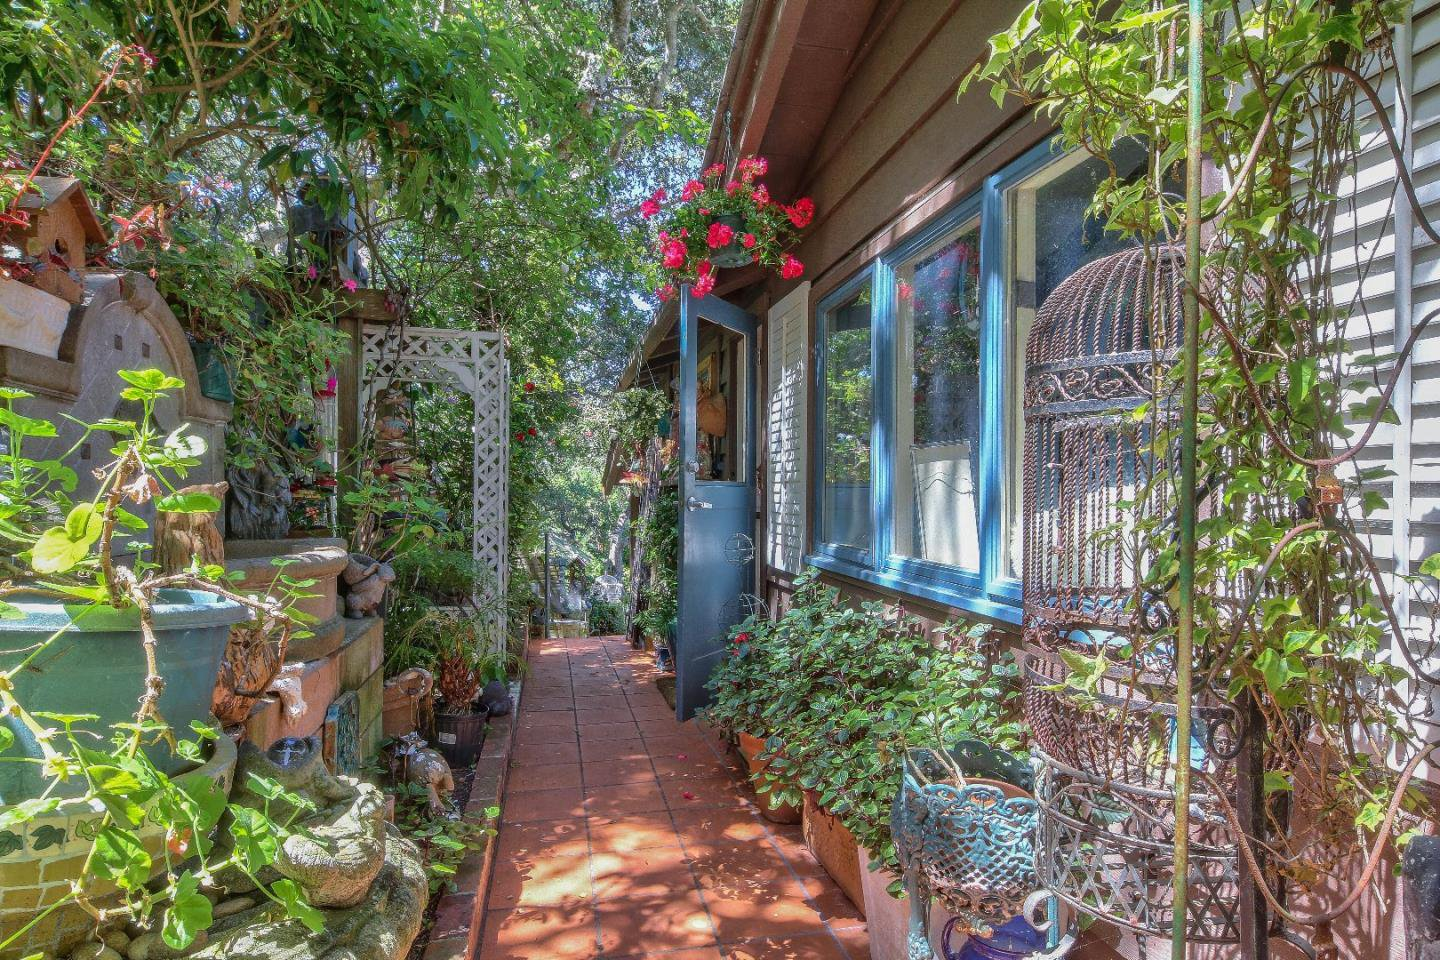 Charming sidewalk to entrance door cottage for sale in Carmel CA